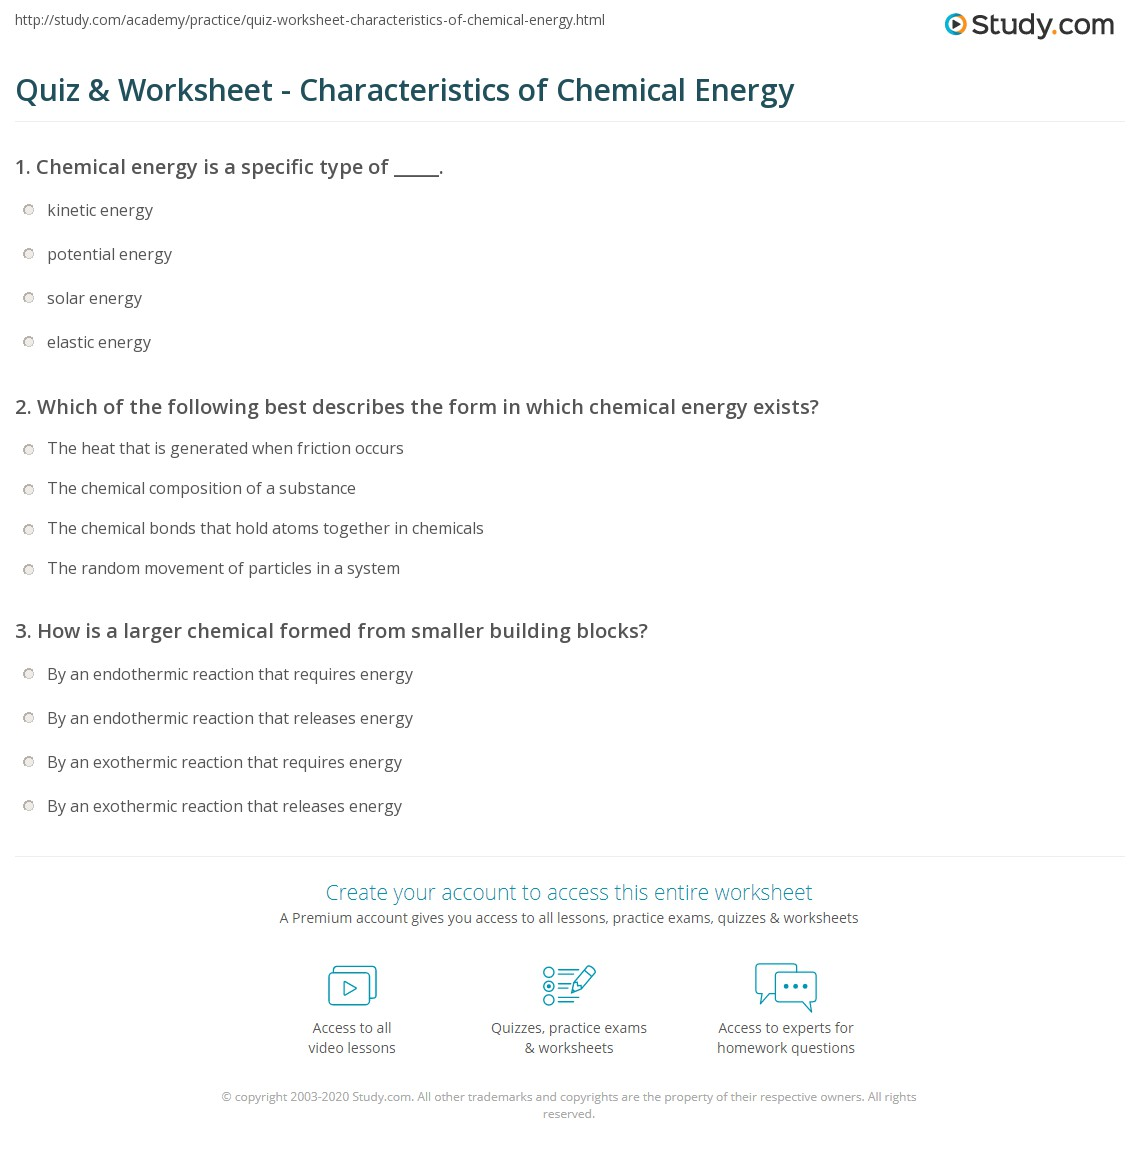 Quiz & Worksheet - Characteristics of Chemical Energy | Study.com